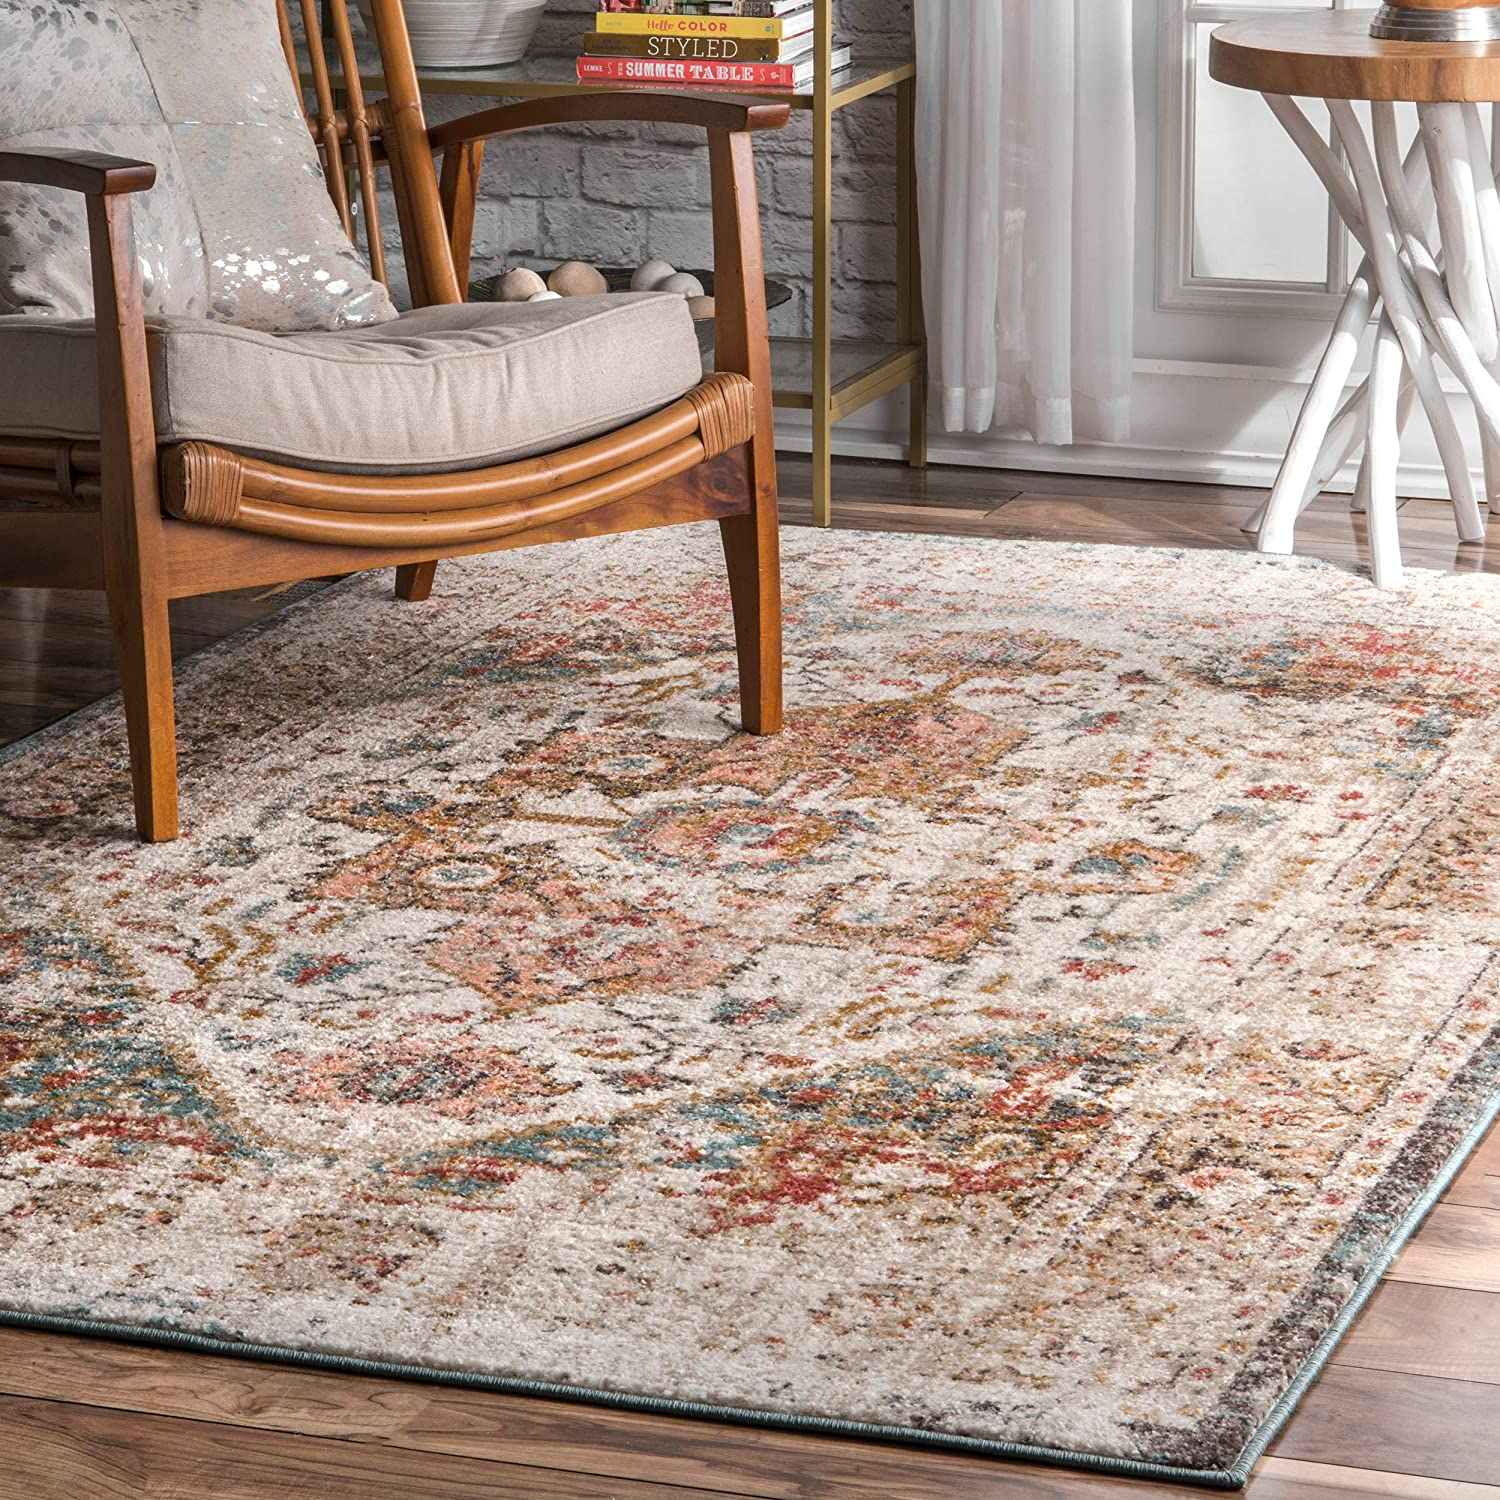 nuLOOM Shane Persian Vintage Area New Shipping Free Shipping Rug Beige 2021 6' 9' 7